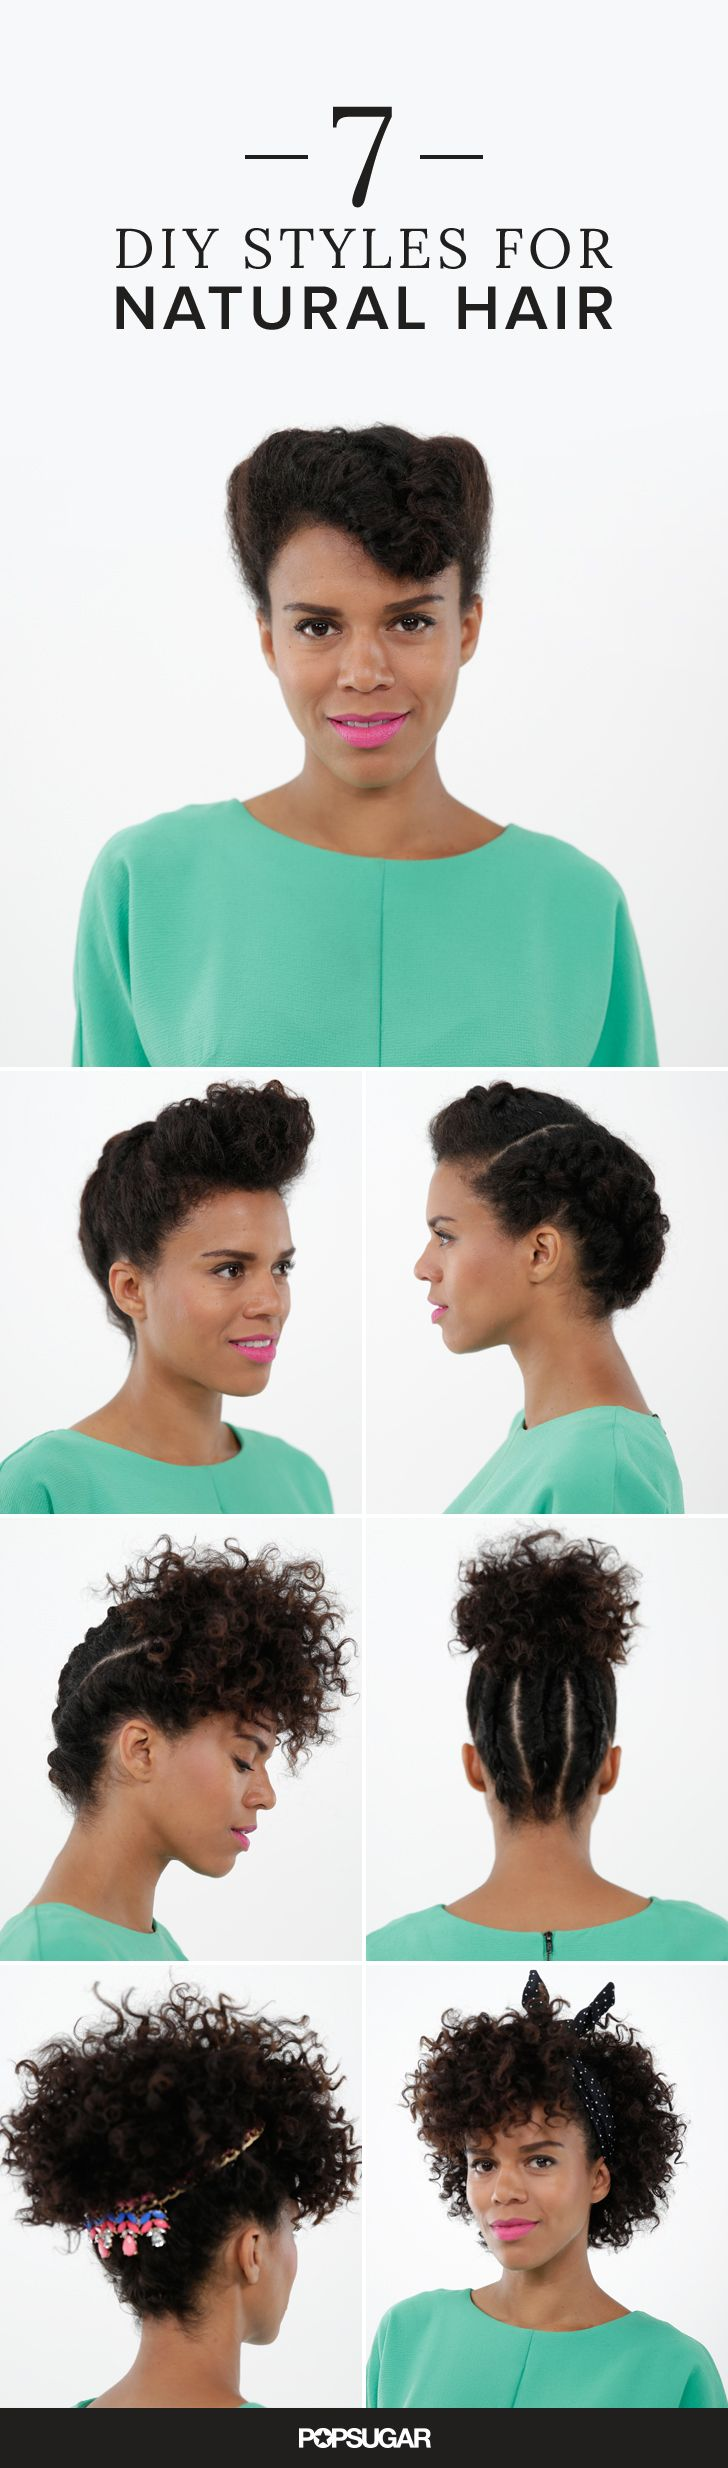 Calling all curly girls! If you've been stuck in a hairstyle rut as of late, we've put together 7 easy DIY hairstyles you can take anywhere. From the office, to happy hour, or to your end-of-Summer barbecues, your hair will always be on point!